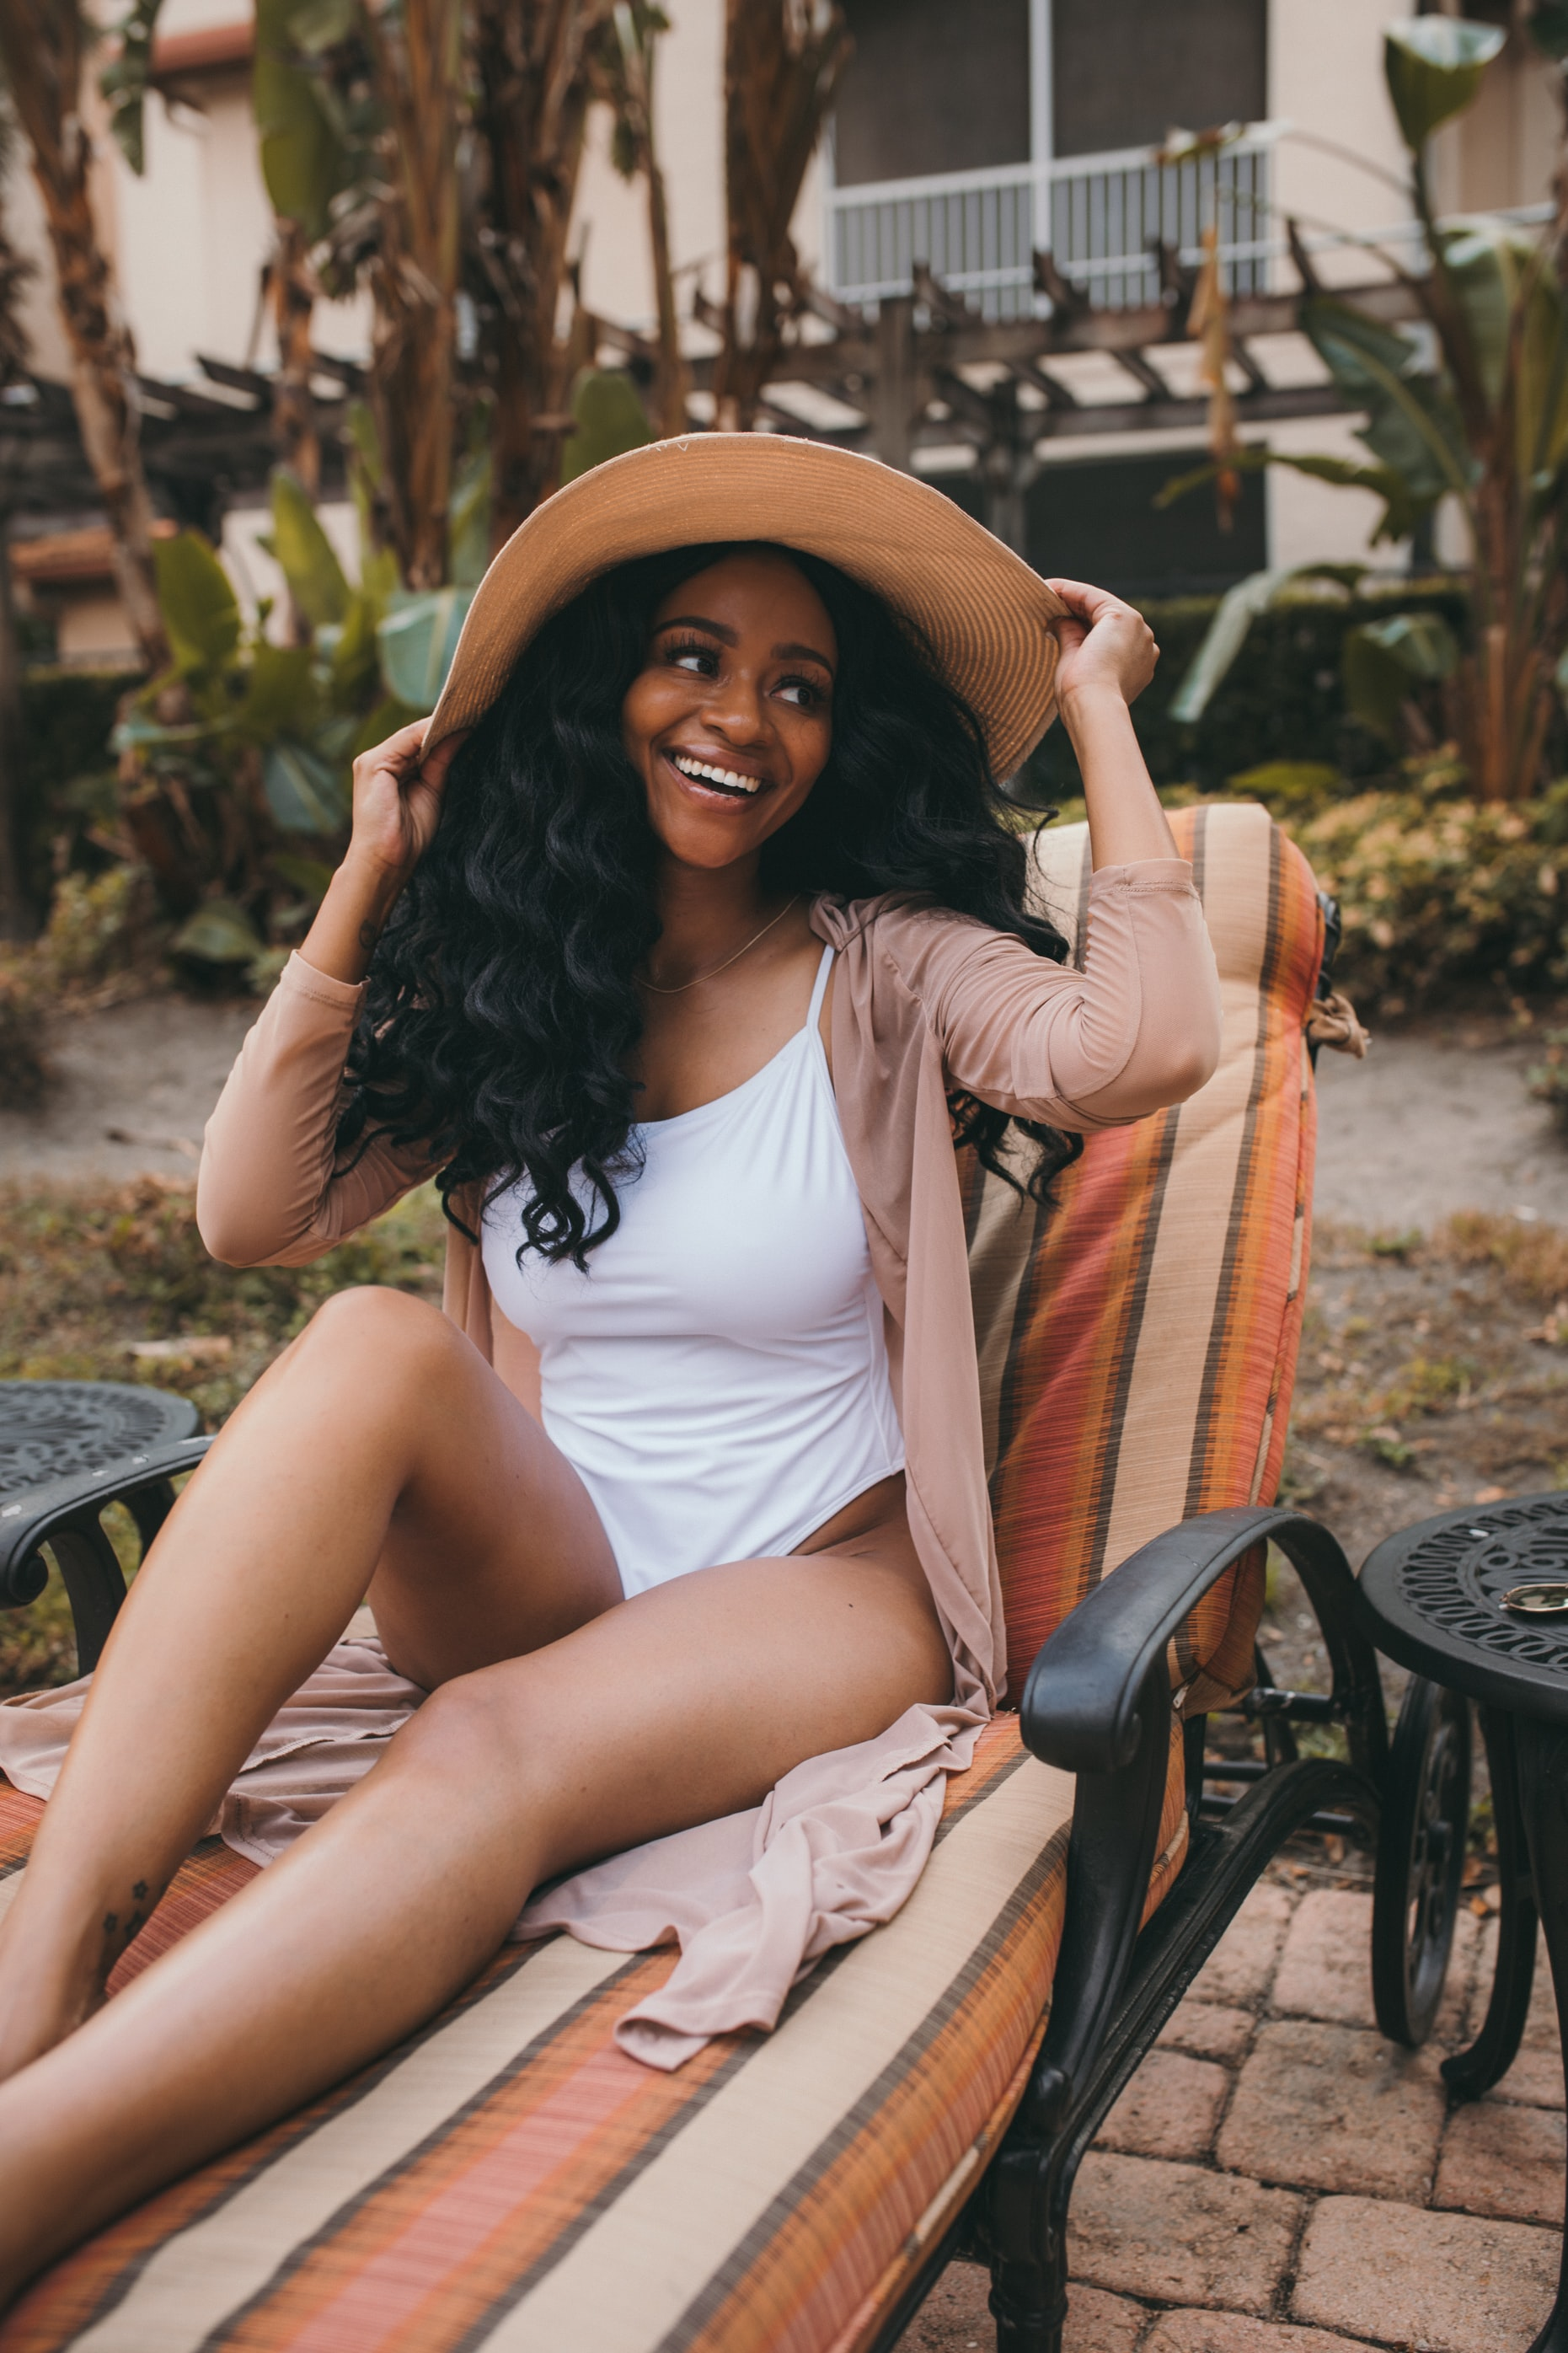 woman in white swimsuit sitting on outdoor lounge smiling